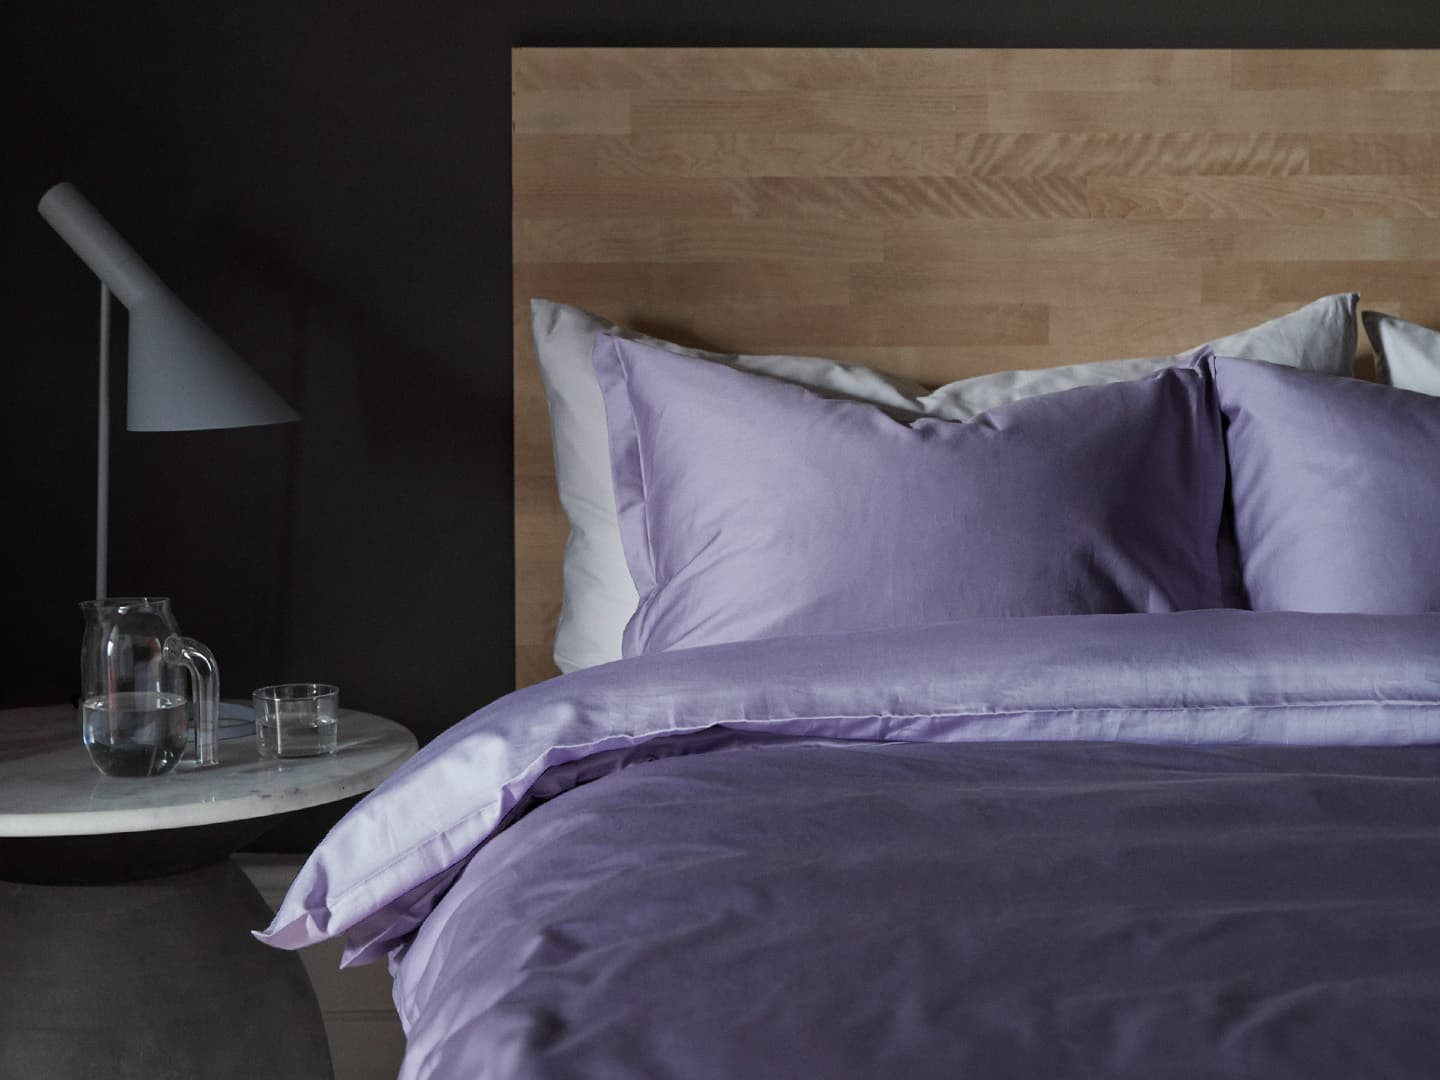 Duvet Cover Vidd - Dusty Lilac in the group Bedding / Duvet Covers at A L V A (1163)